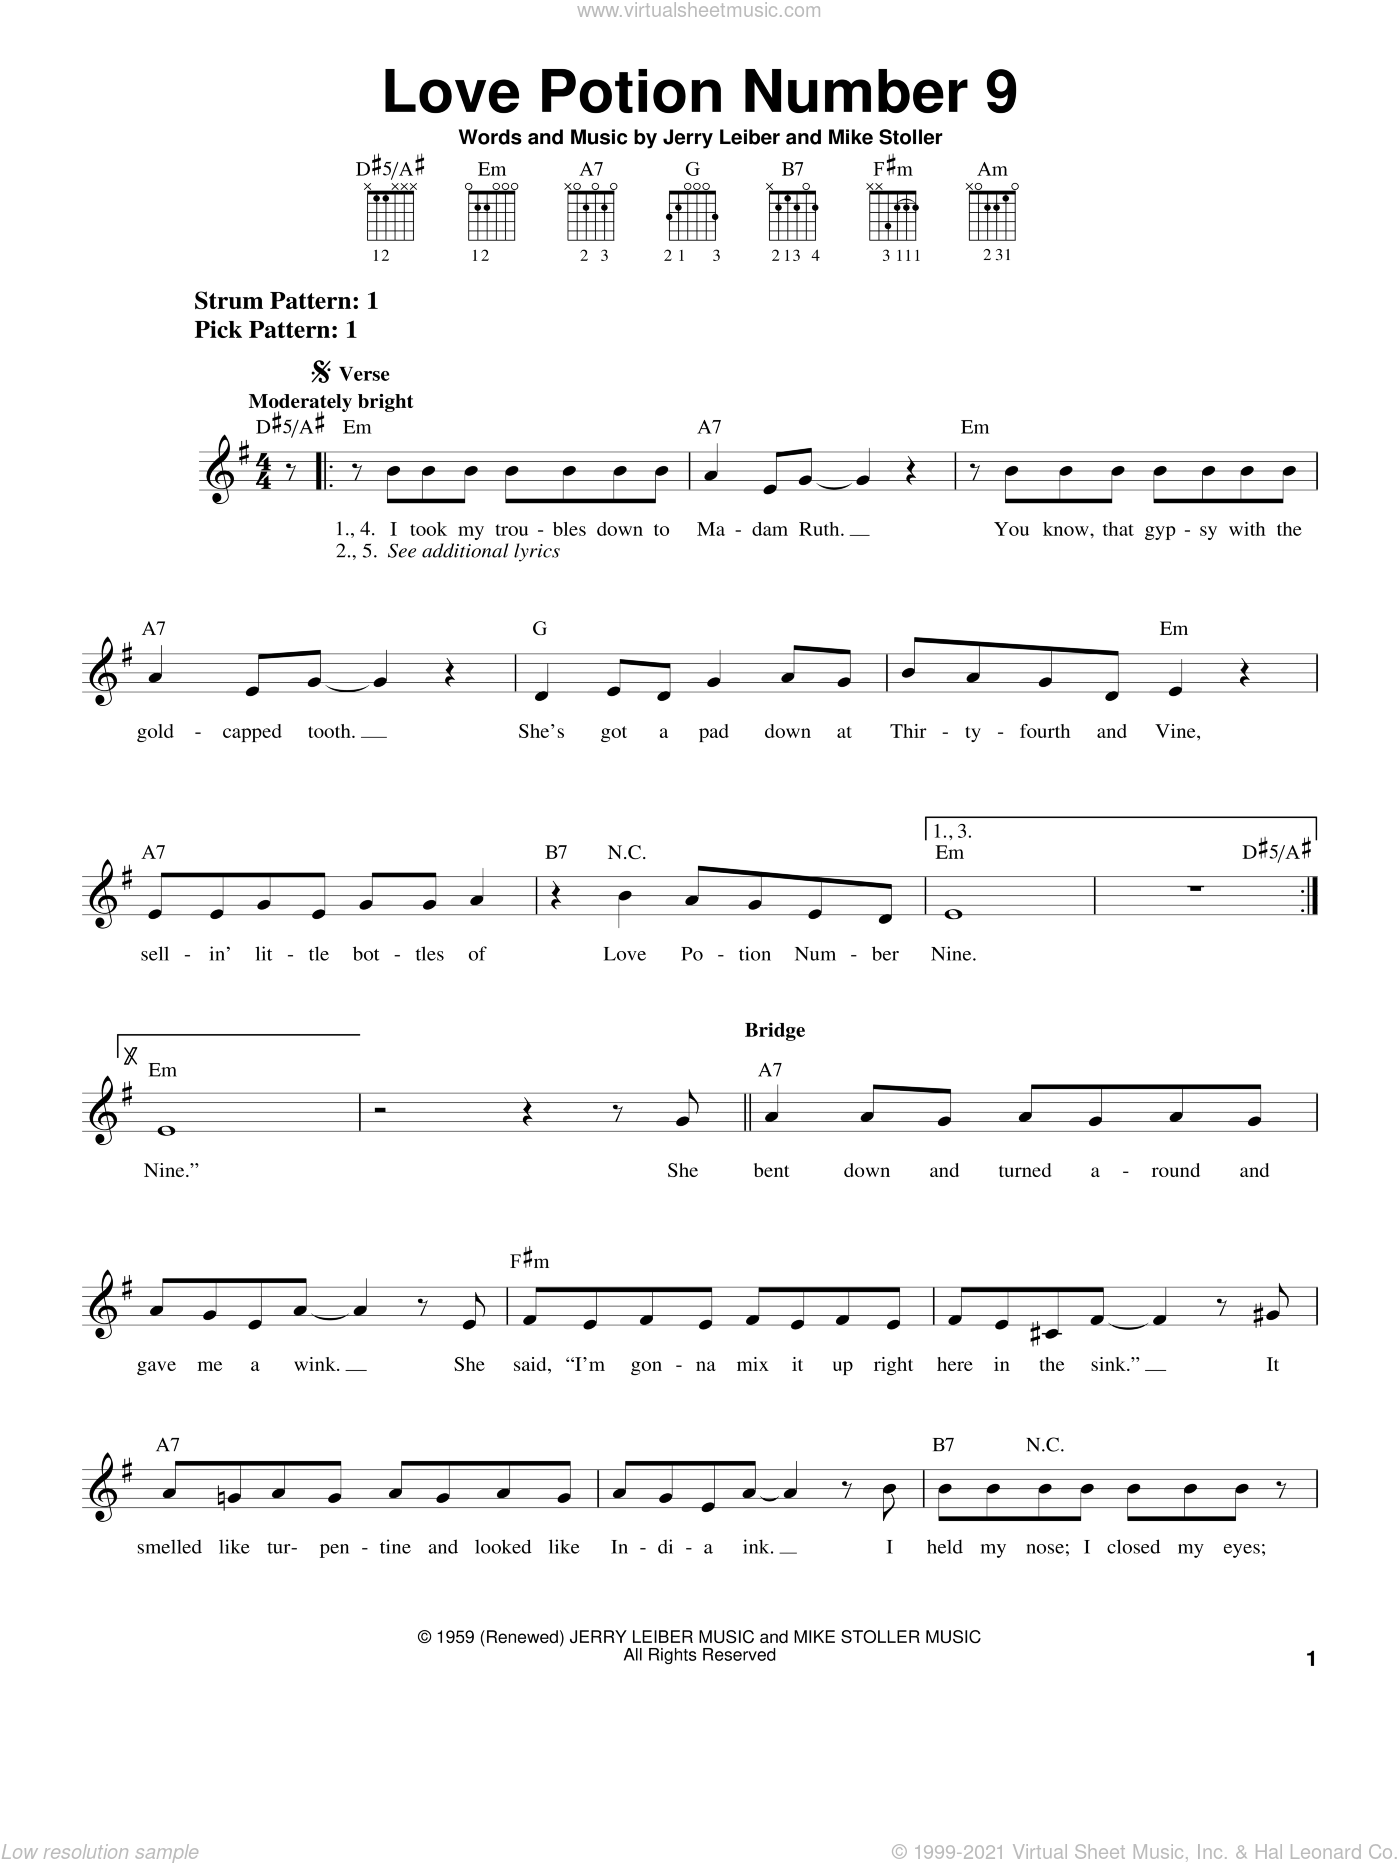 Love Potion Number 9 sheet music for guitar solo (chords) by The Searchers, Leiber & Stoller, Jerry Leiber and Mike Stoller, easy guitar (chords)